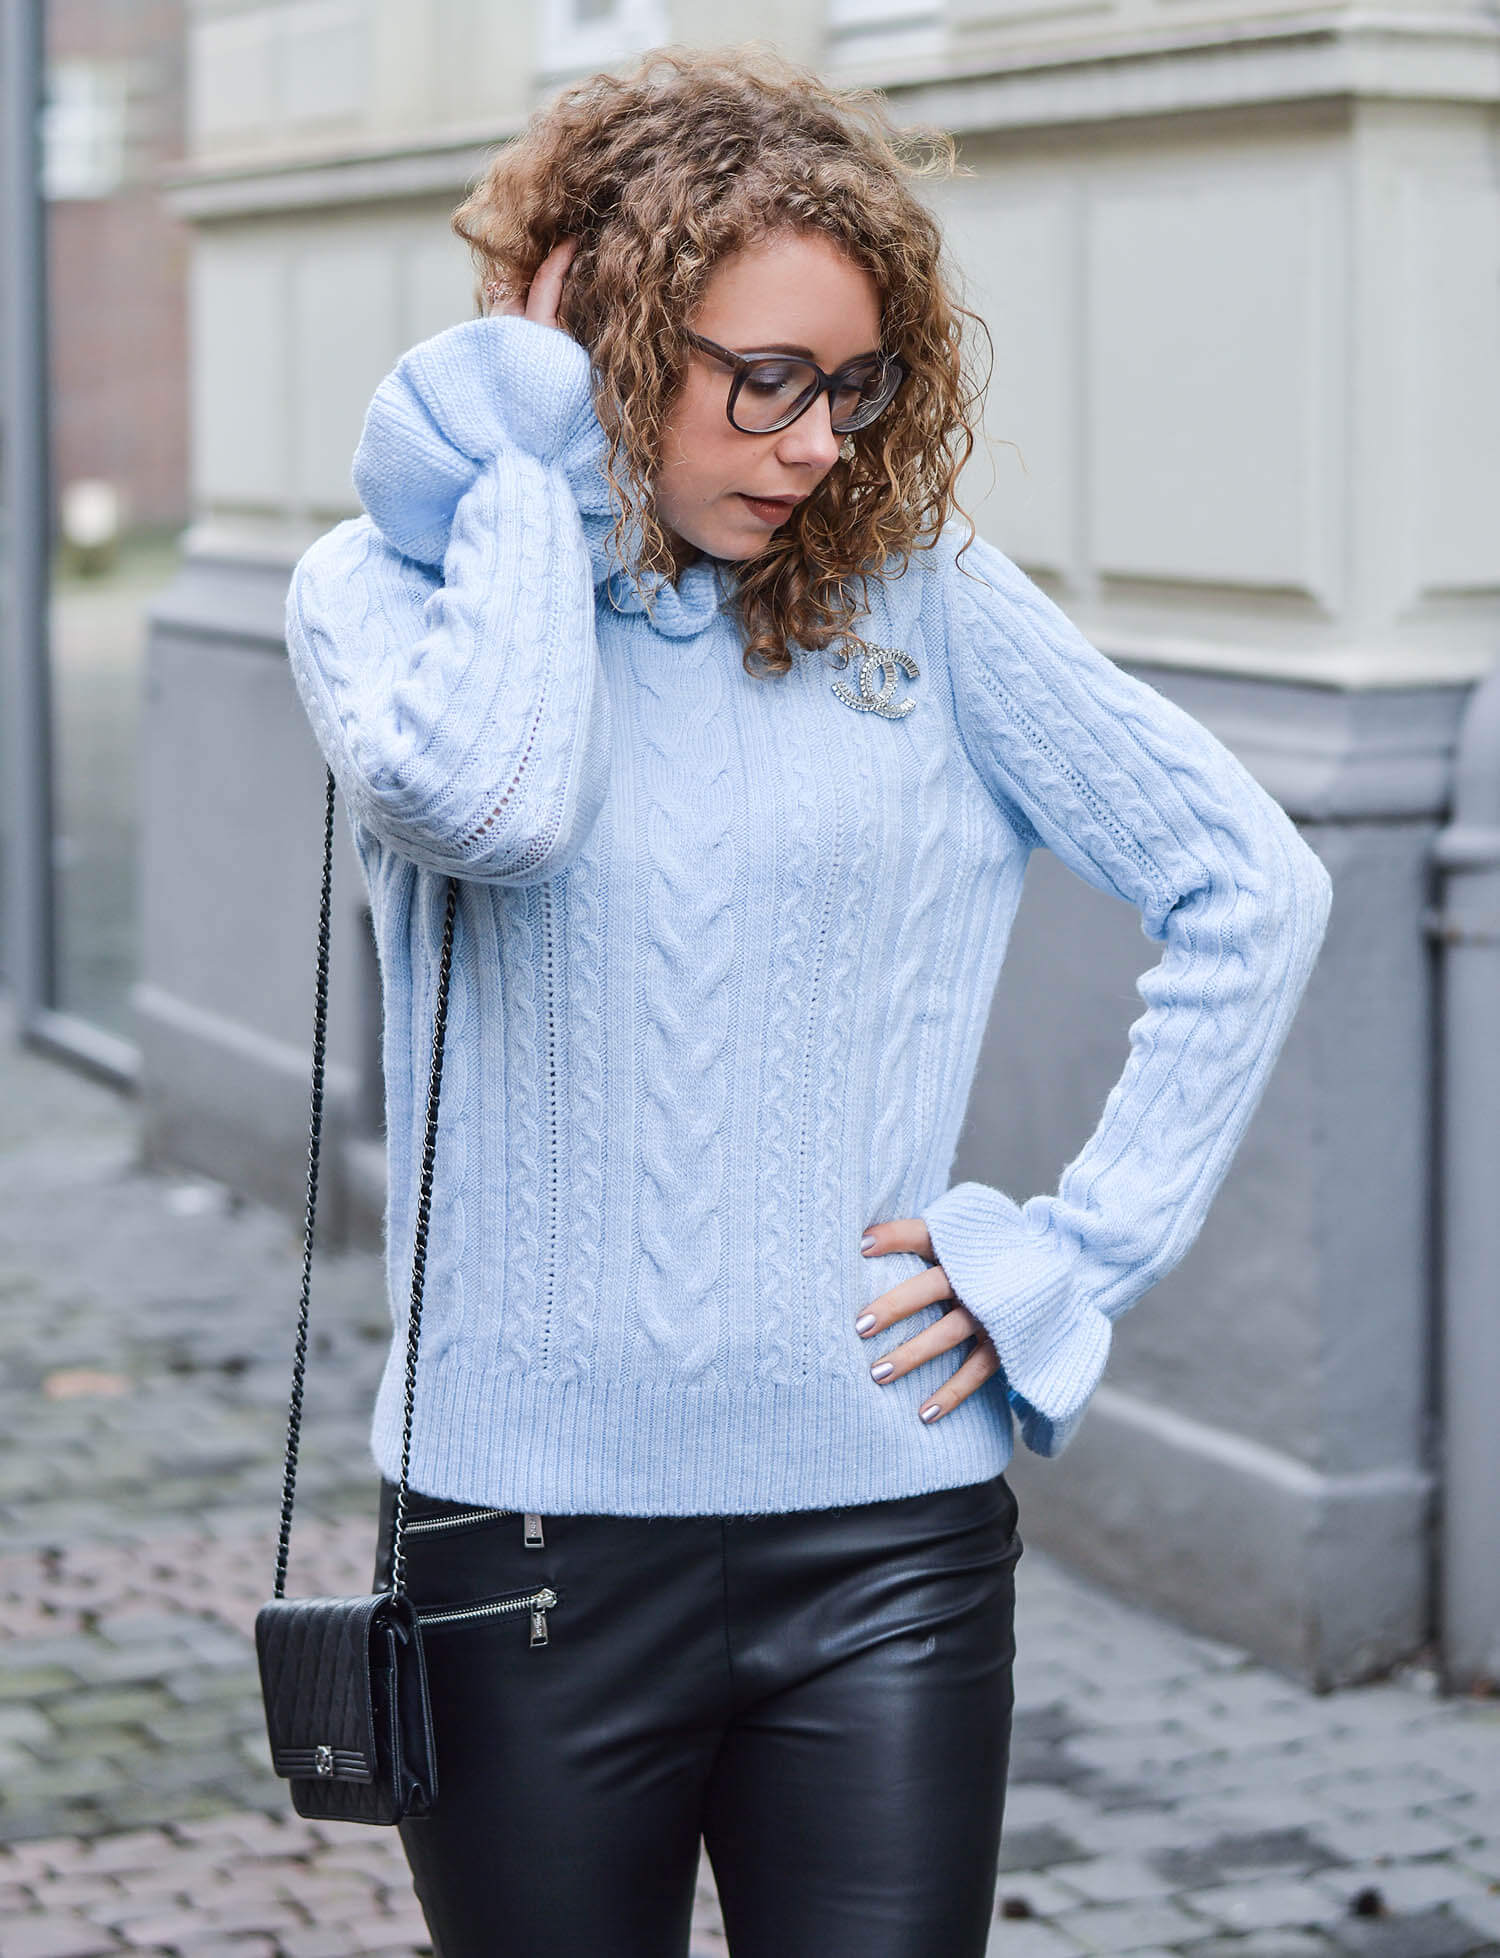 Outfit-Baby-Blue-Knit-Pullover-and-Guess-Fake-Leather-Pants-kationette-fashionblogger-nrw-streetstyle